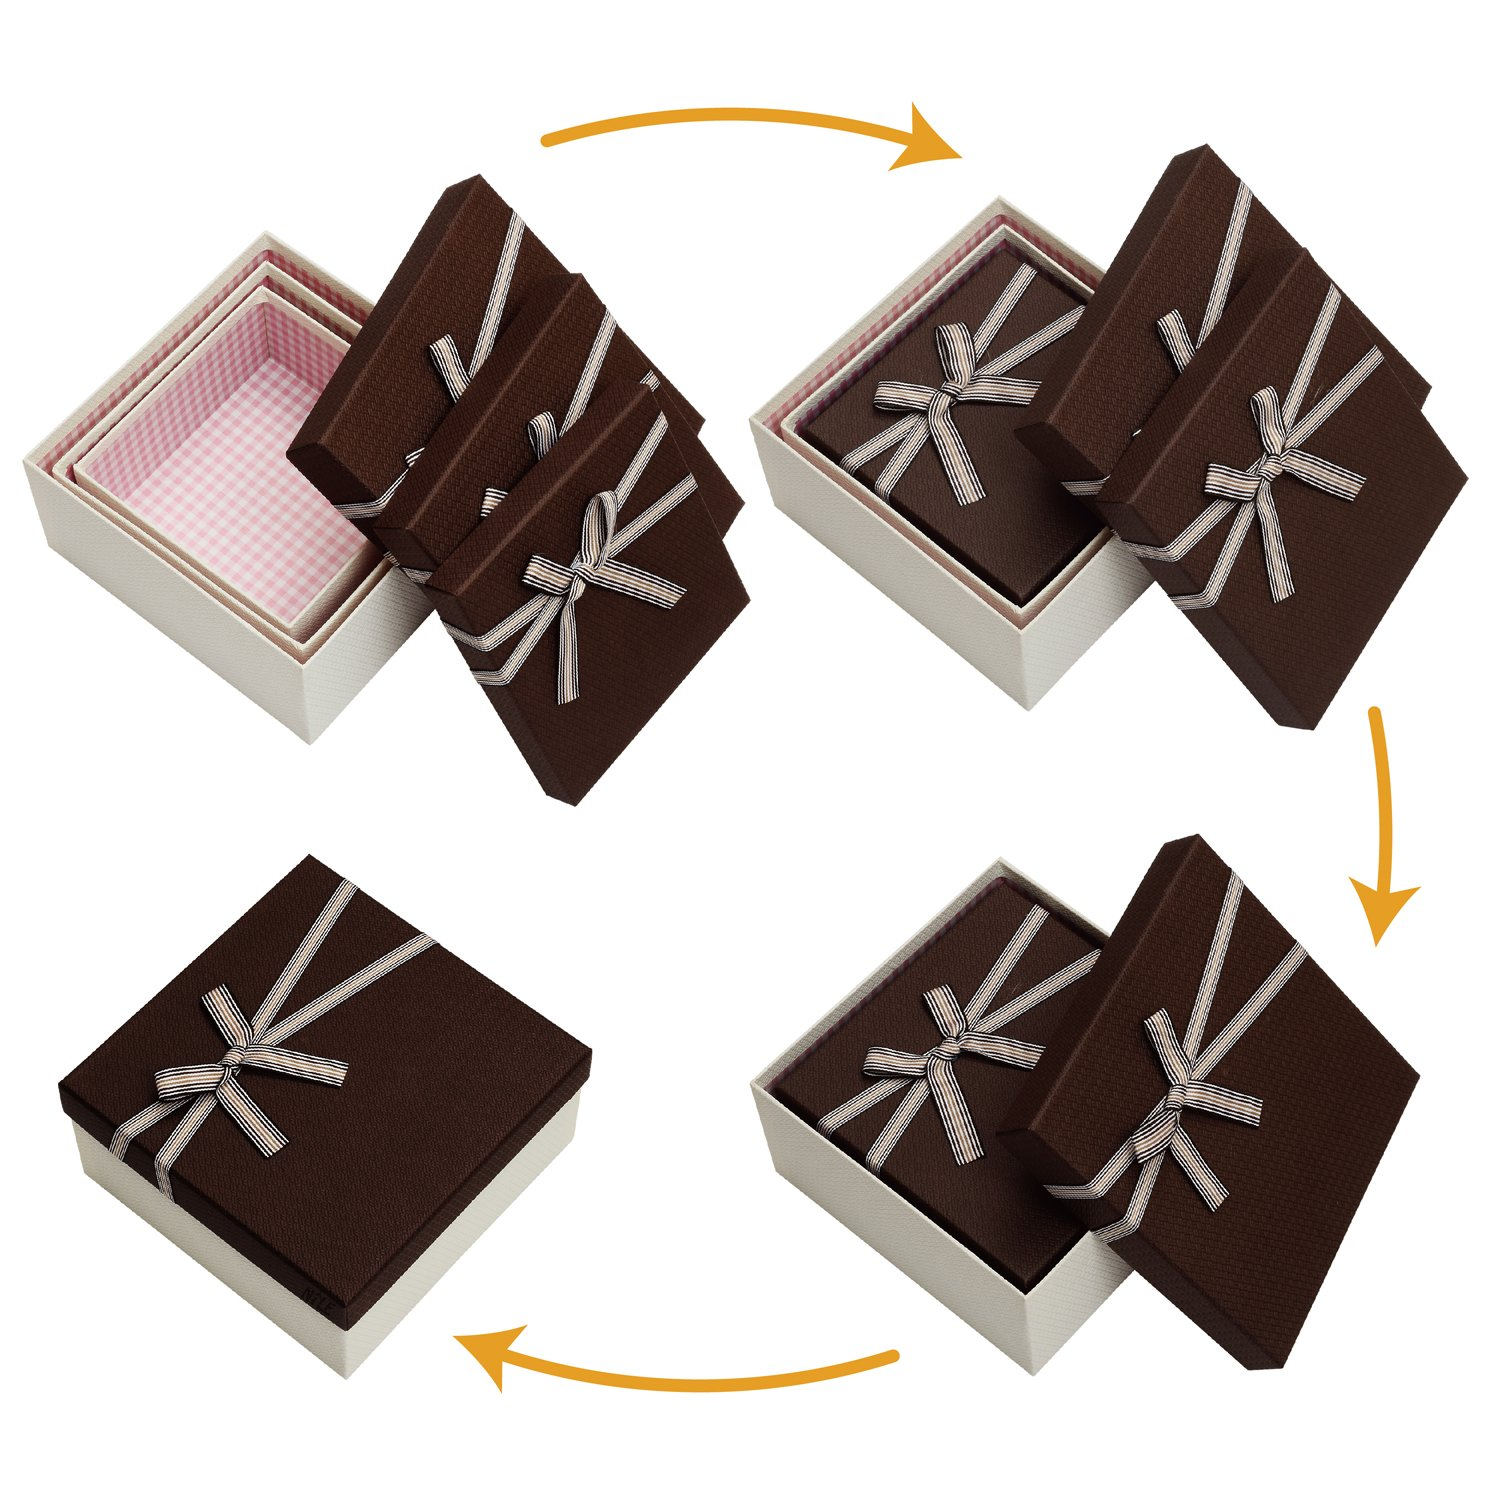 Square Nesting Gift Boxes, A Set of 3,Brown Color with A Bowtie by Ikee Design (Image #3)